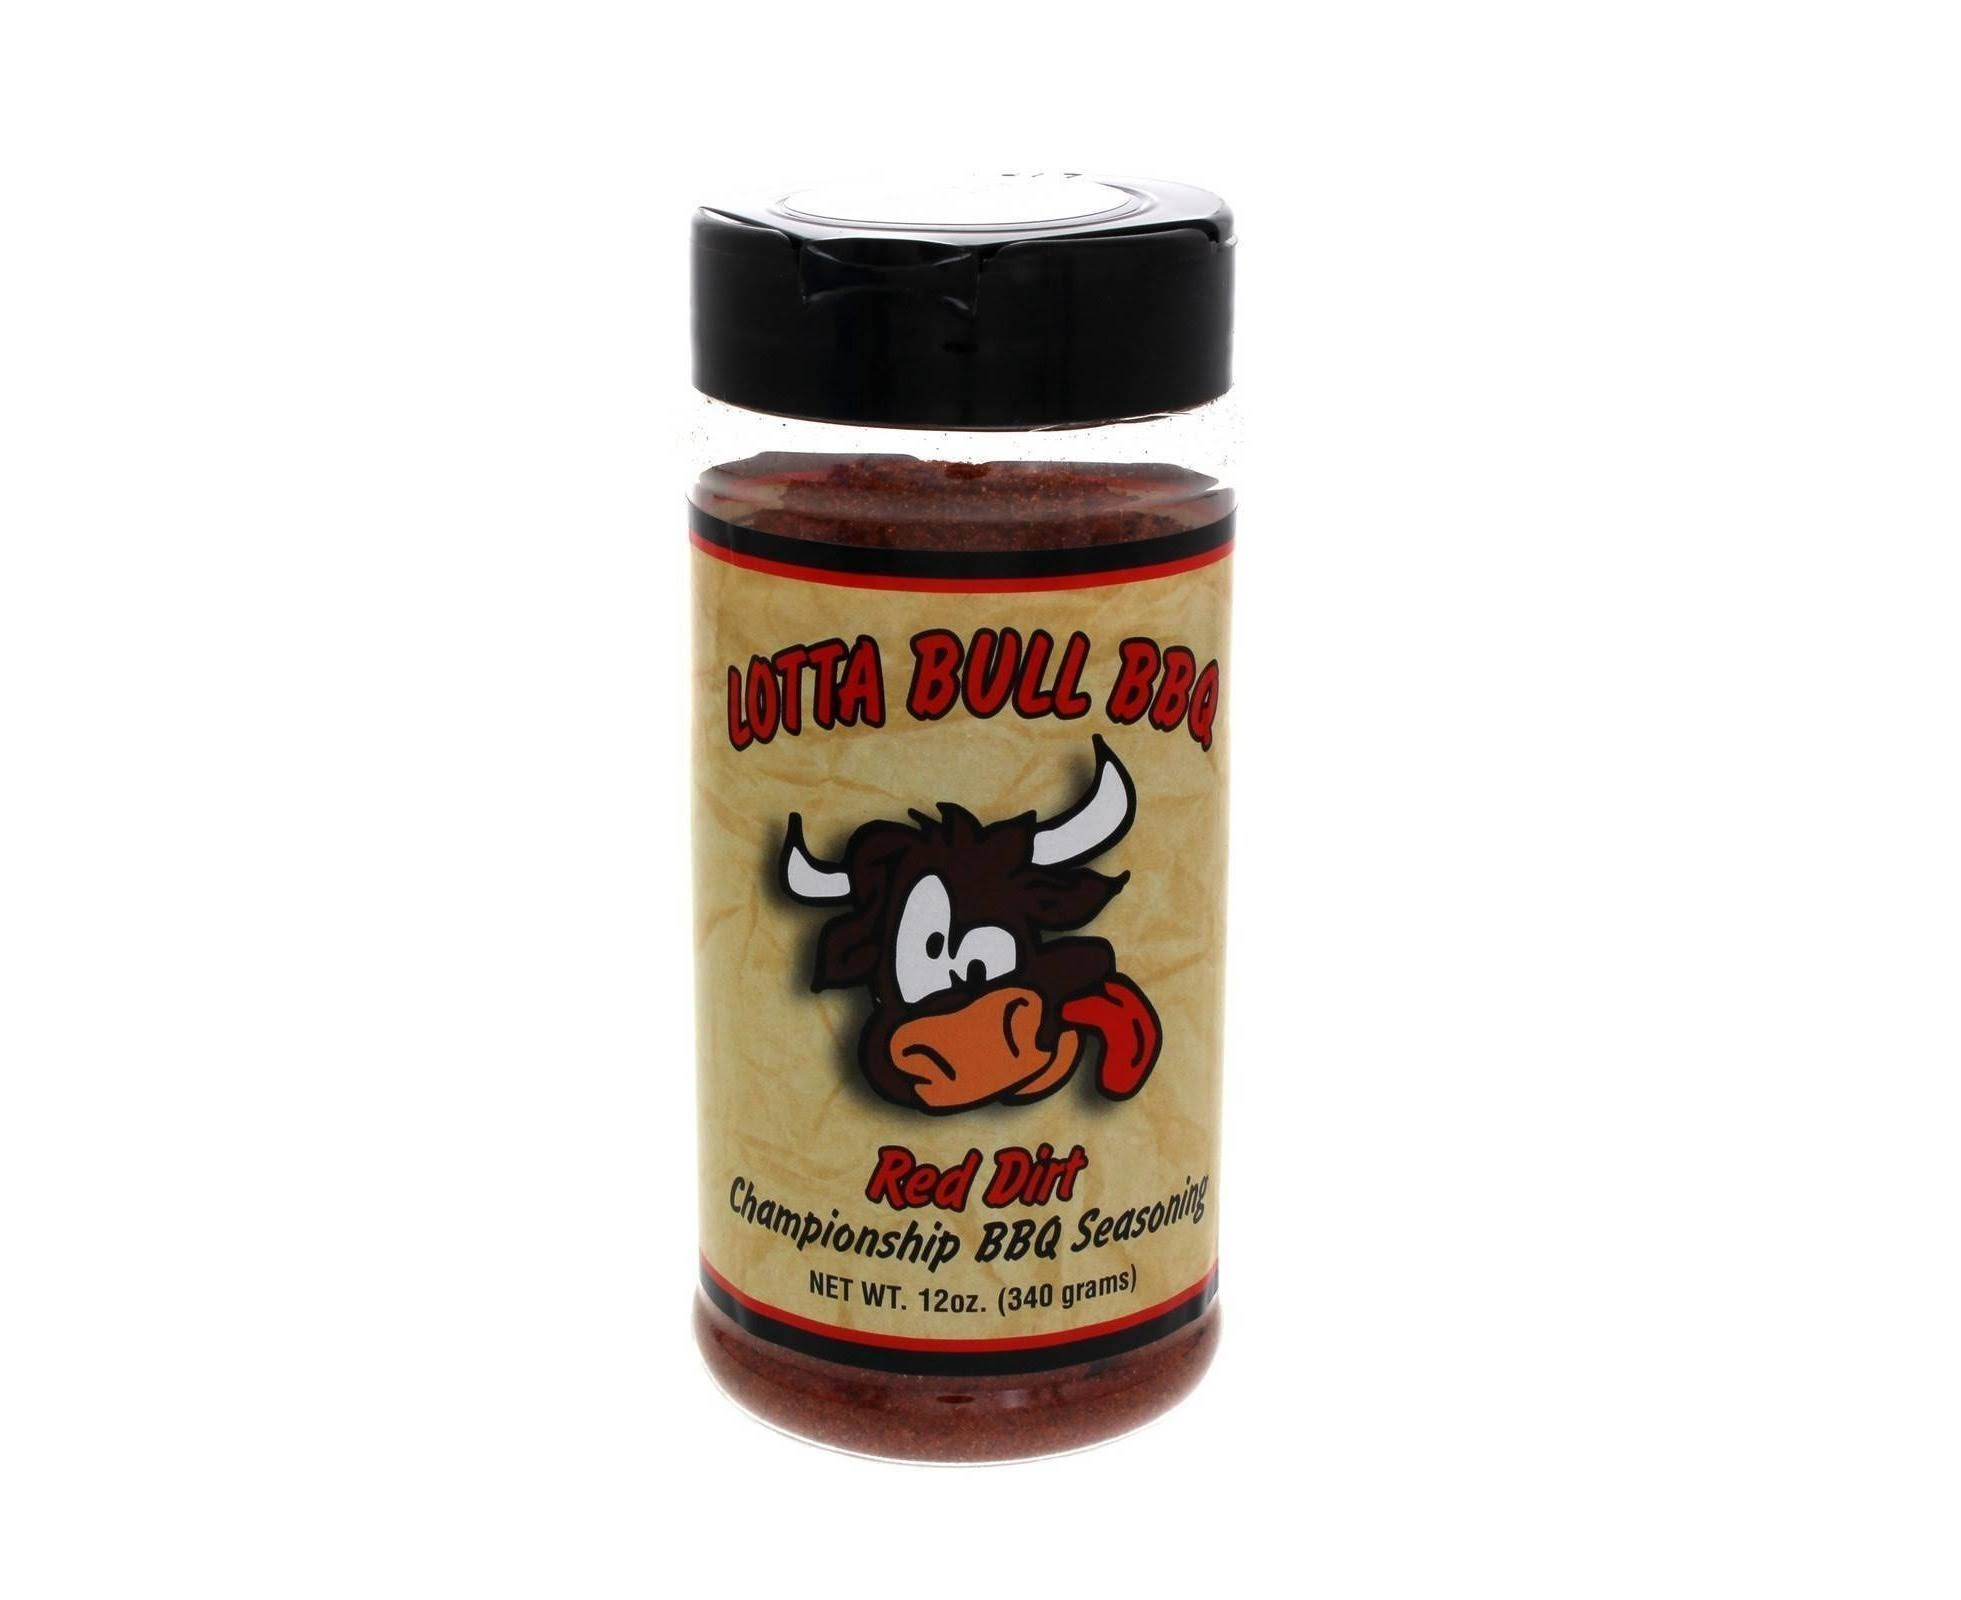 Lotta Bull Red Dirt Championship BBQ Seasoning and Rub - 12oz